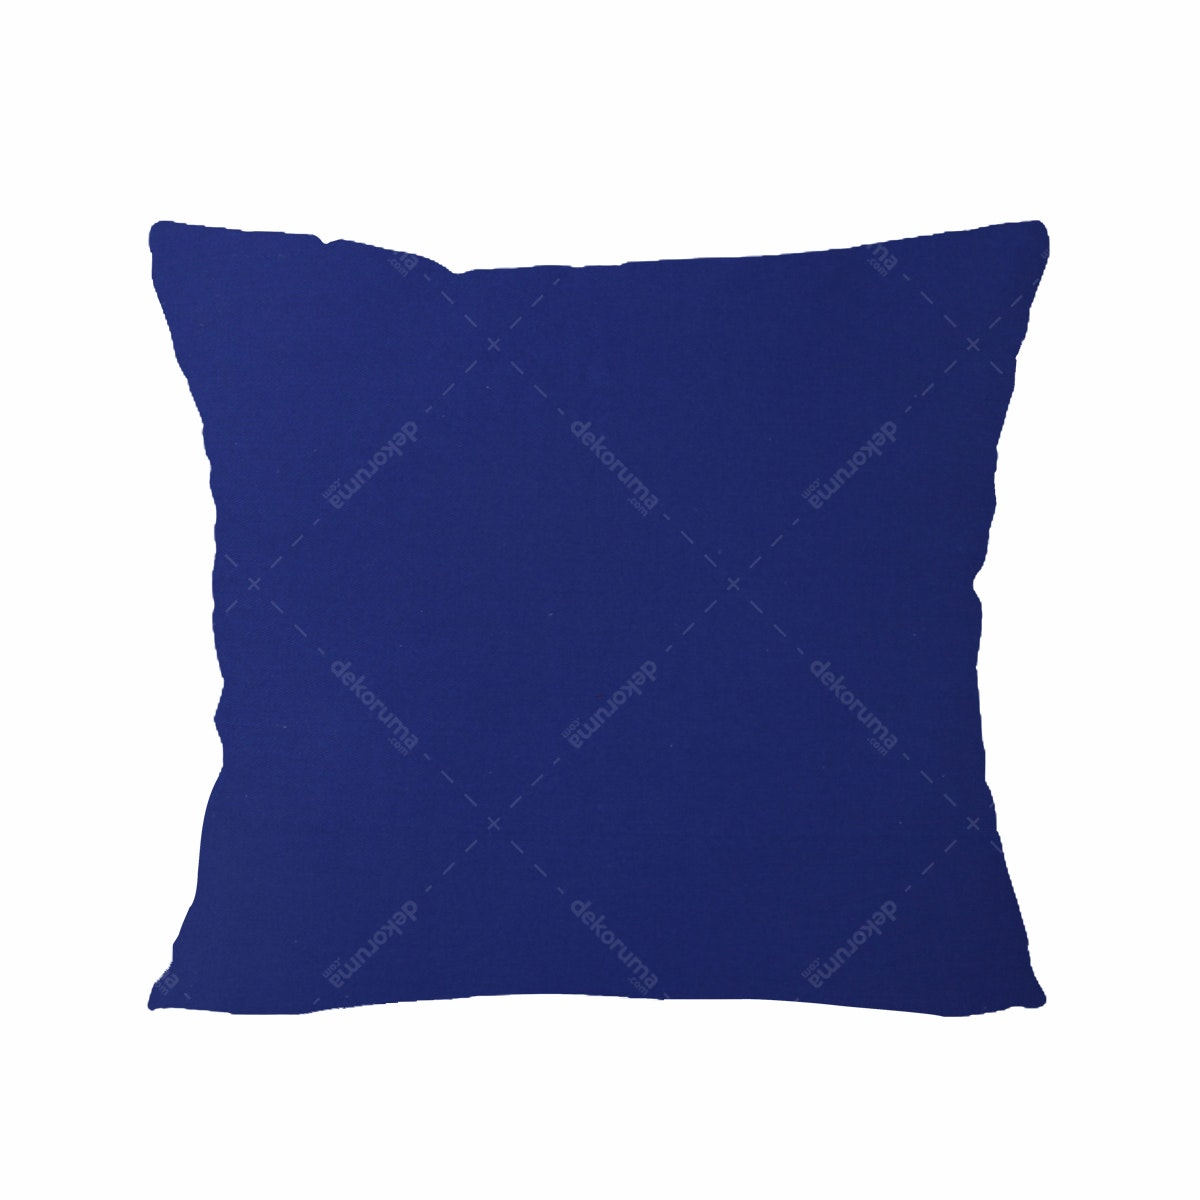 13 Episode Dancing Leaves Cushion Cover 50cmx50cm (Cover)